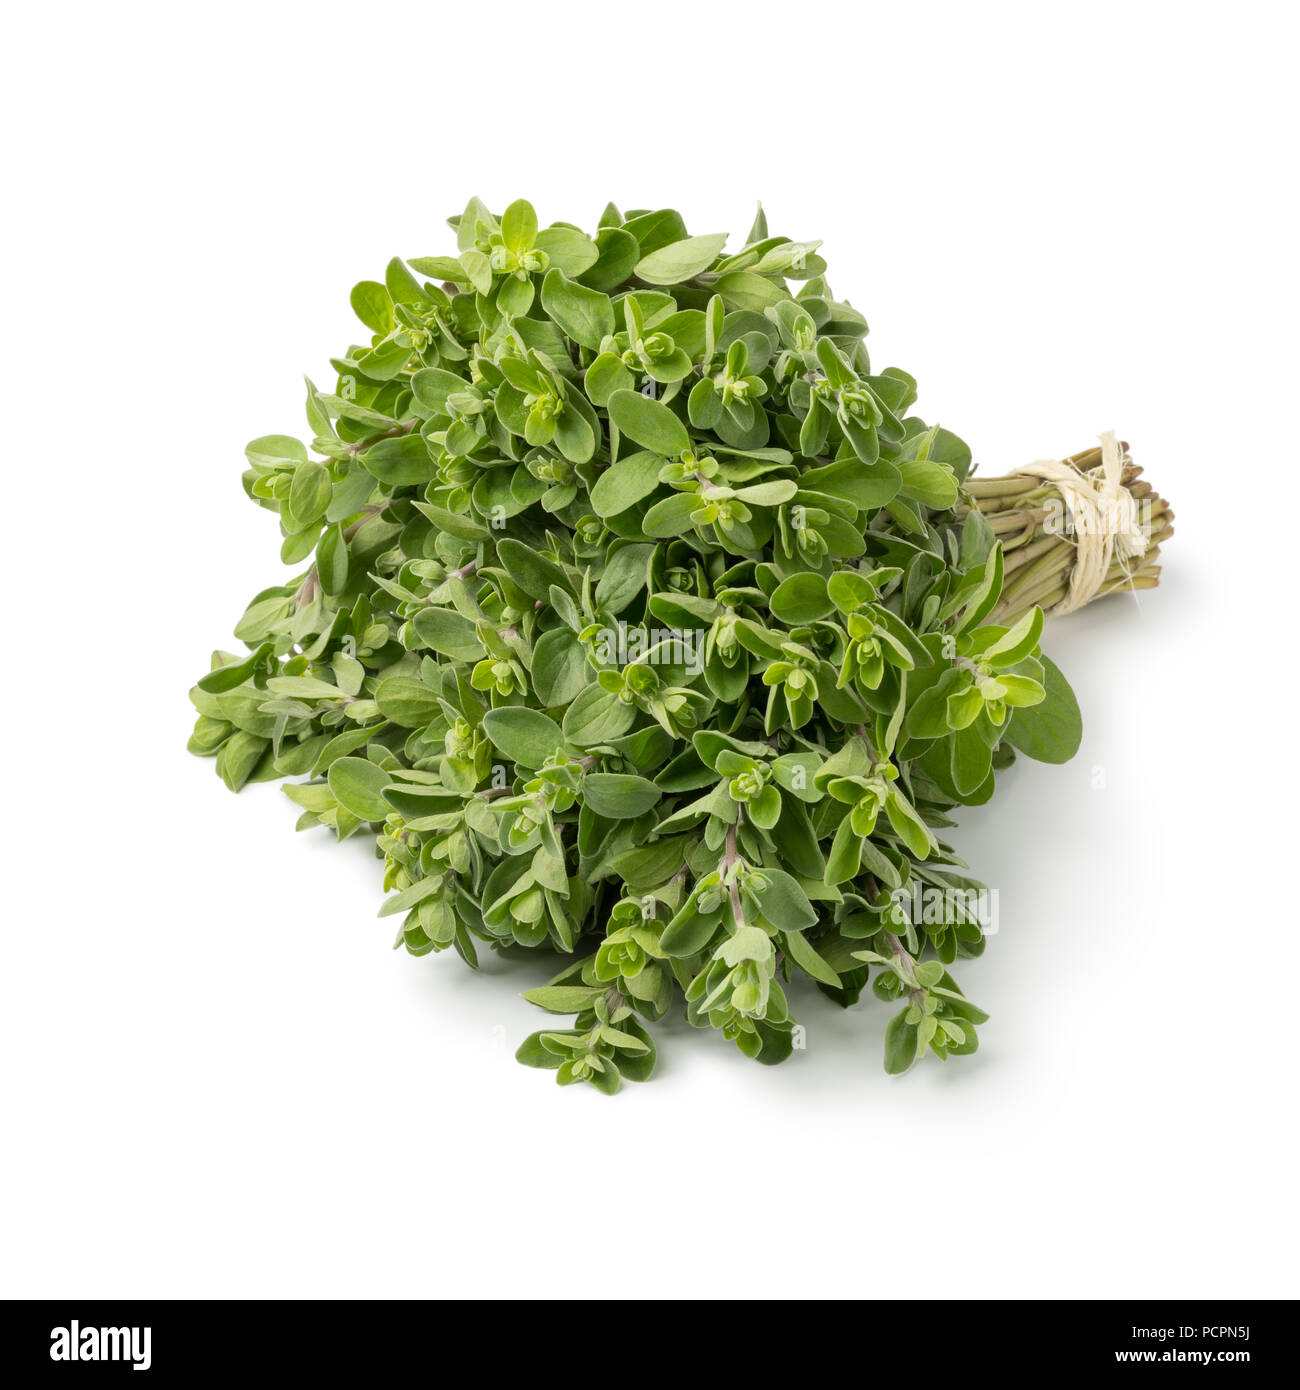 Bouquet of fresh picked green organic marjoram isolated on white background - Stock Image